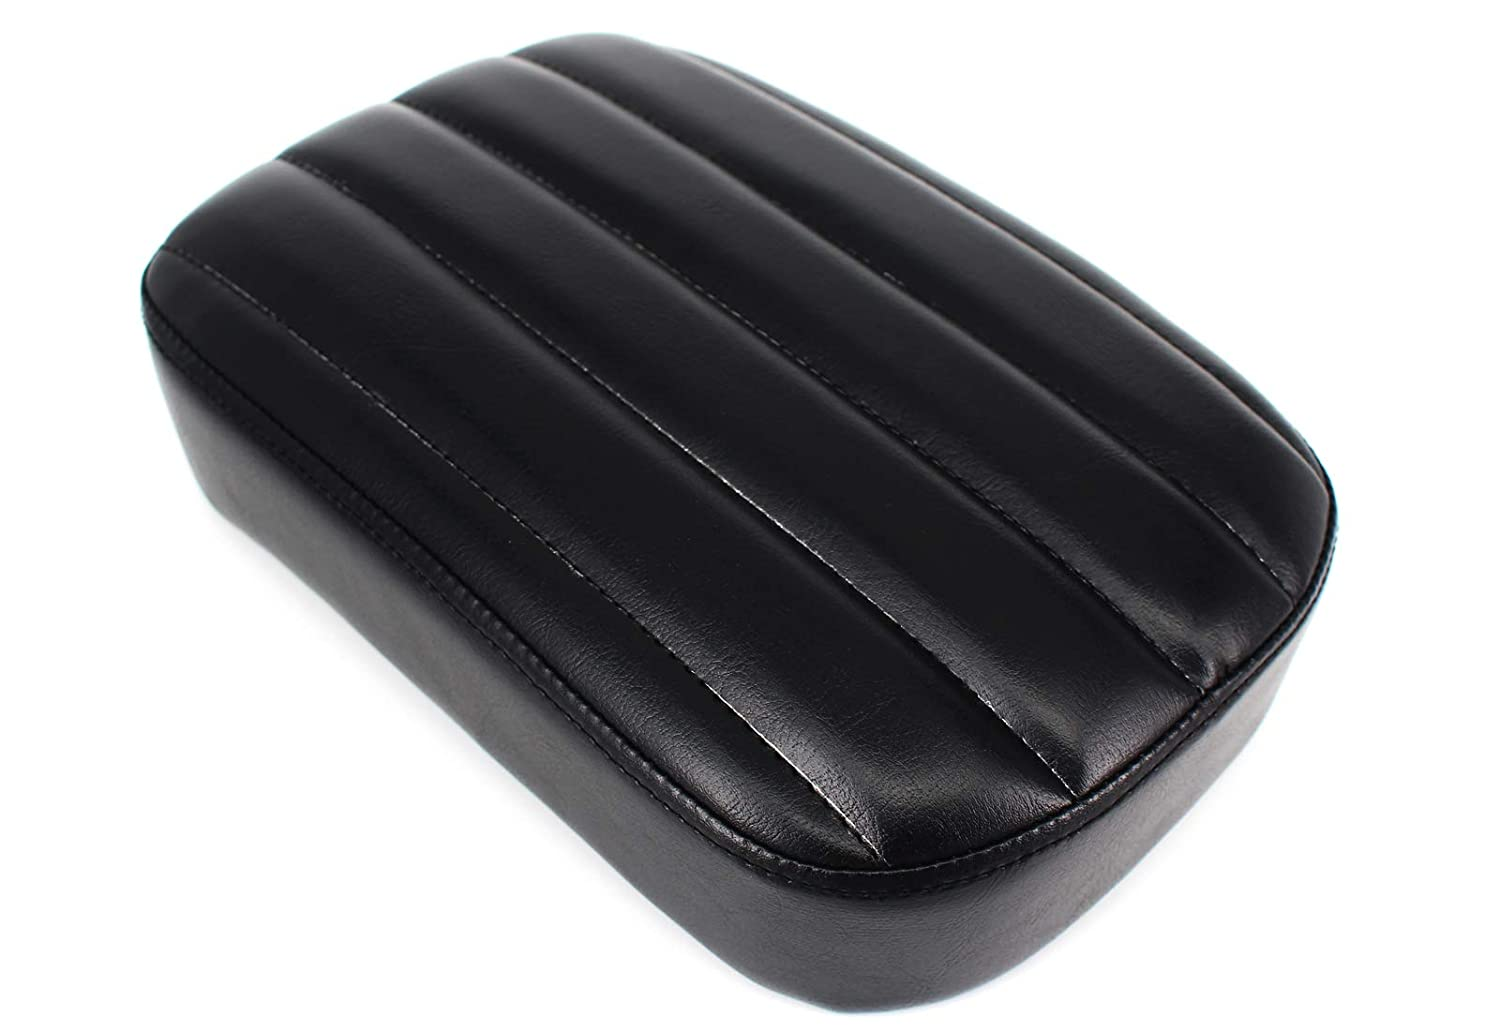 Pillion Pad Seat 8 Suction Cup For Harley Dyna Sportster Softail Touring XL 883 1200